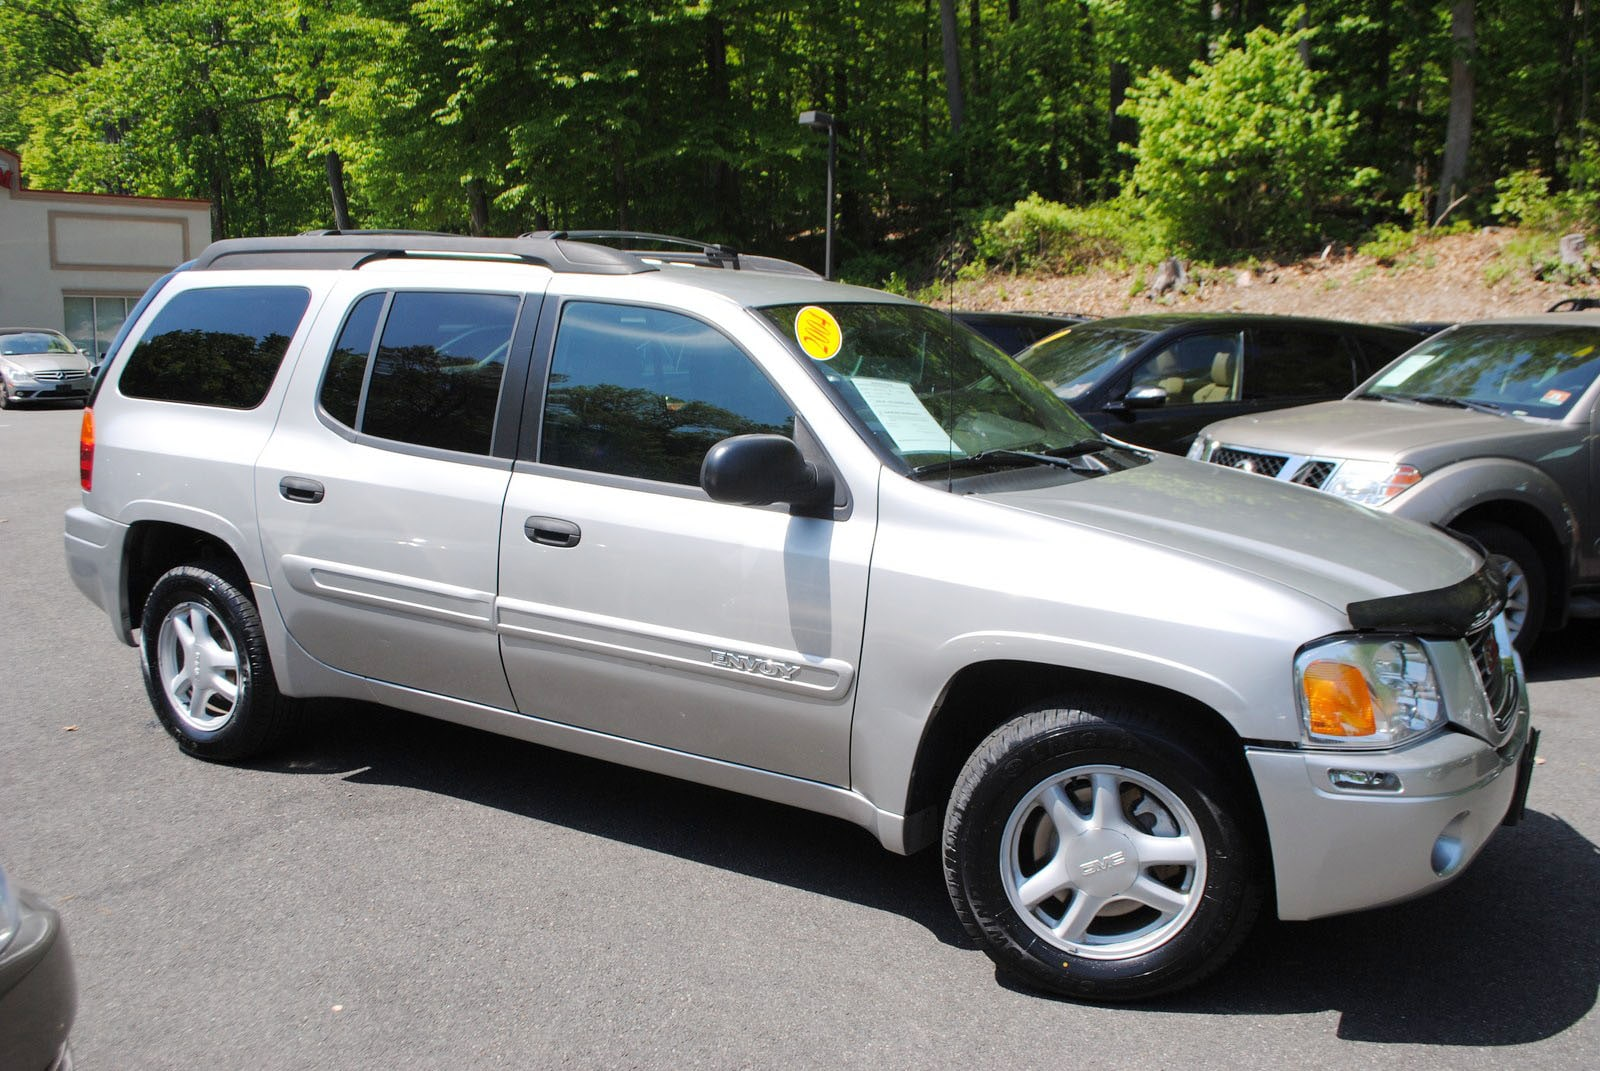 used 2004 gmc envoy xl for sale west milford nj. Black Bedroom Furniture Sets. Home Design Ideas